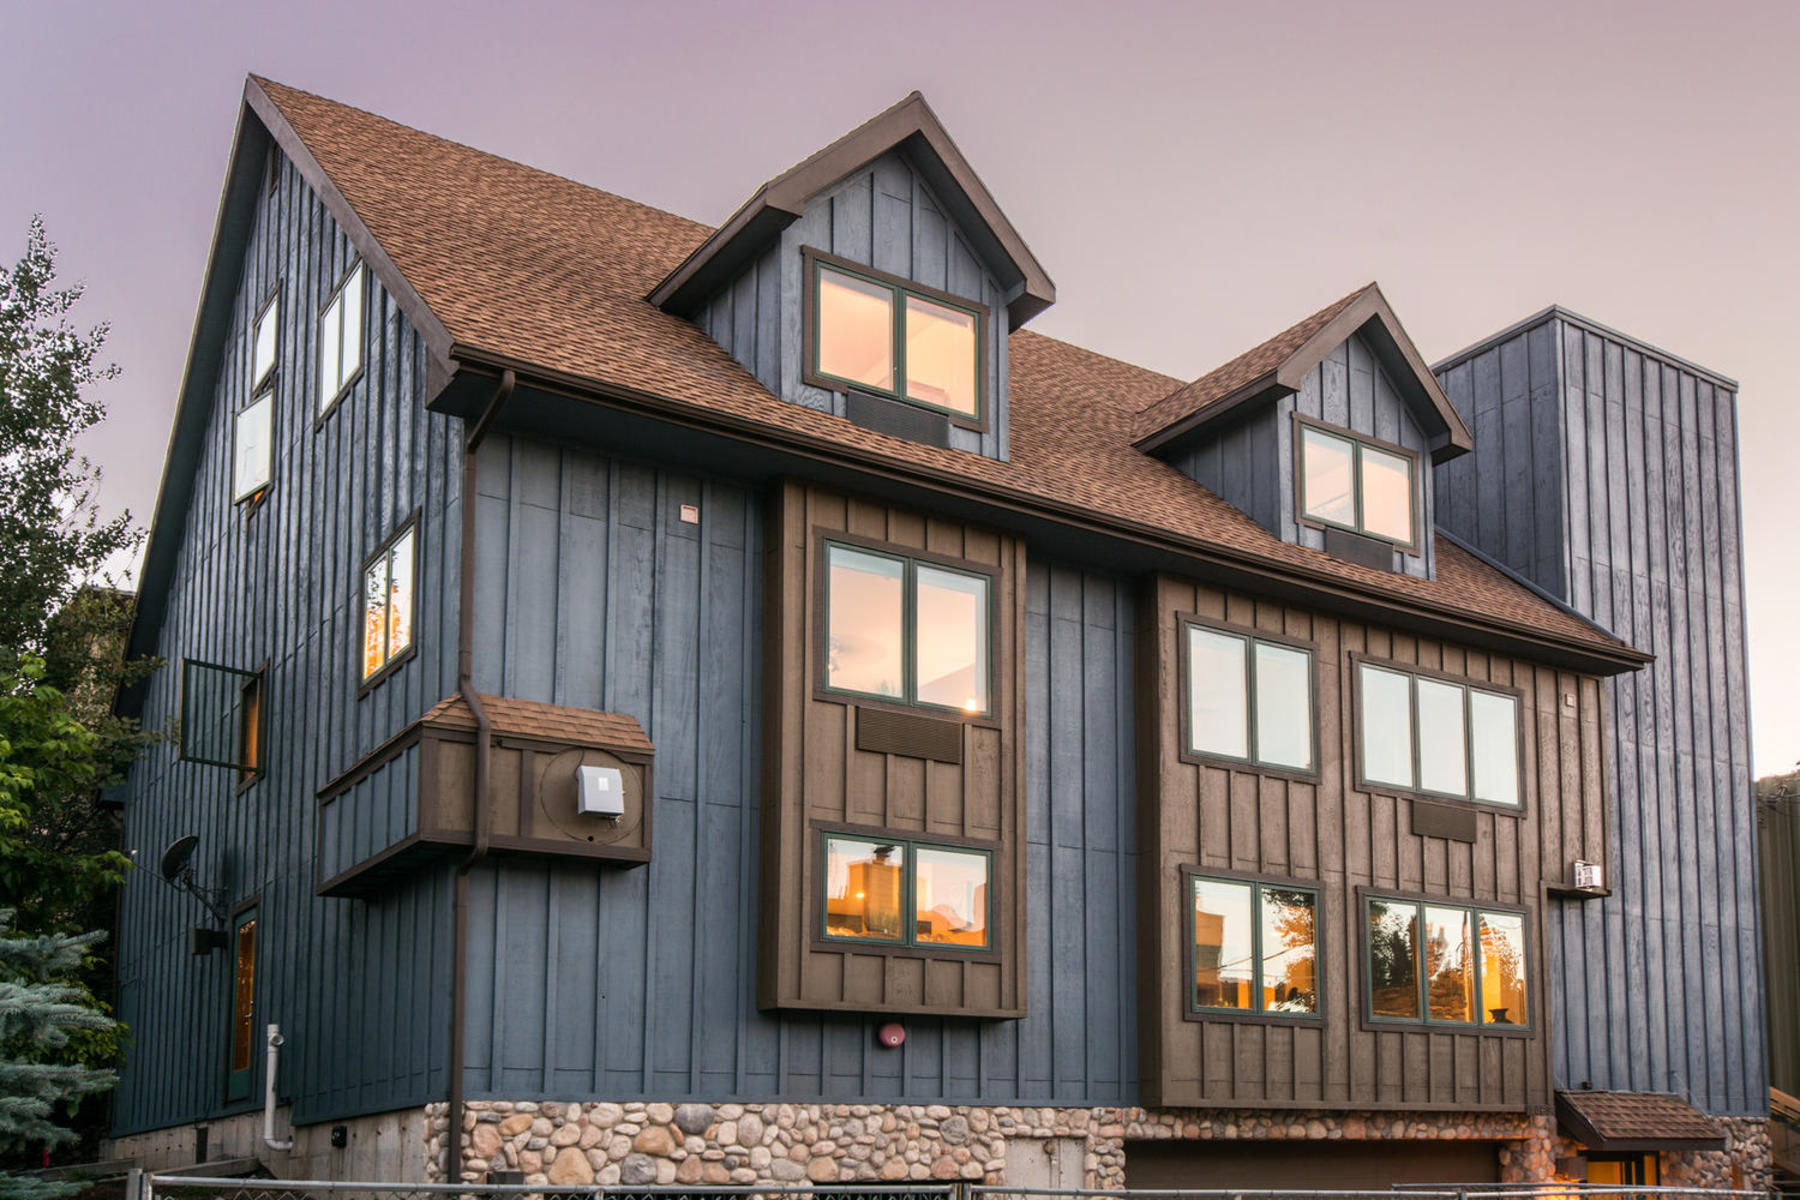 Maison unifamiliale pour l Vente à Park City Epic Lodge 1469 Woodside Ave Park City, Utah, 84060 États-Unis